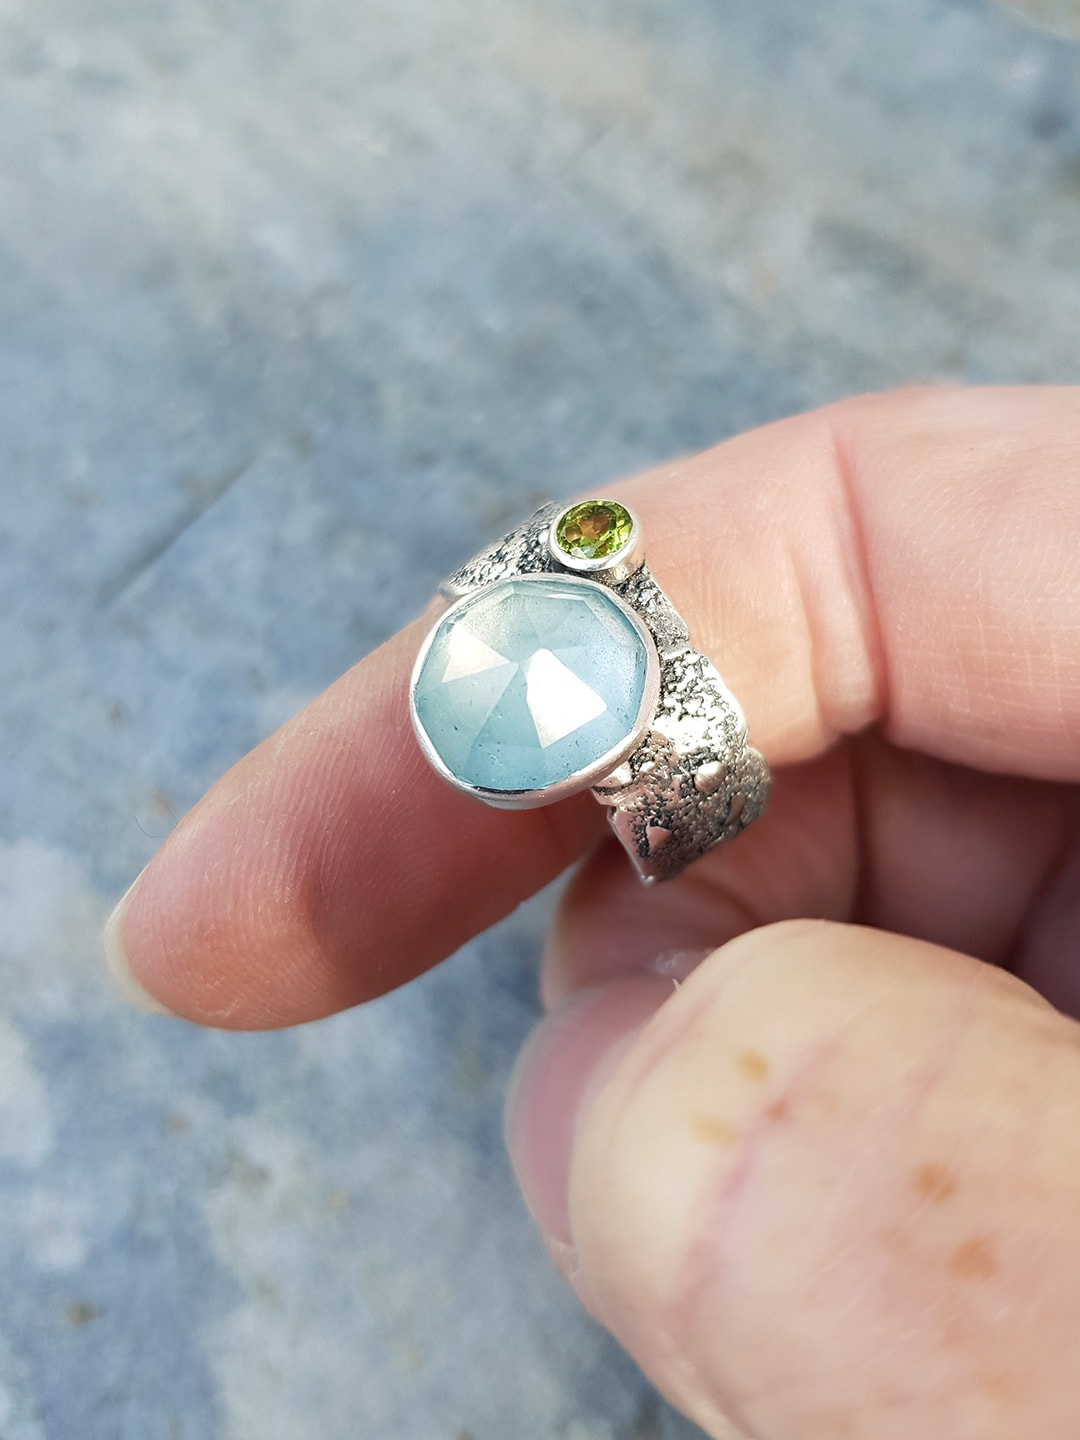 Handmade ring commission in sterling silver and aquamarine